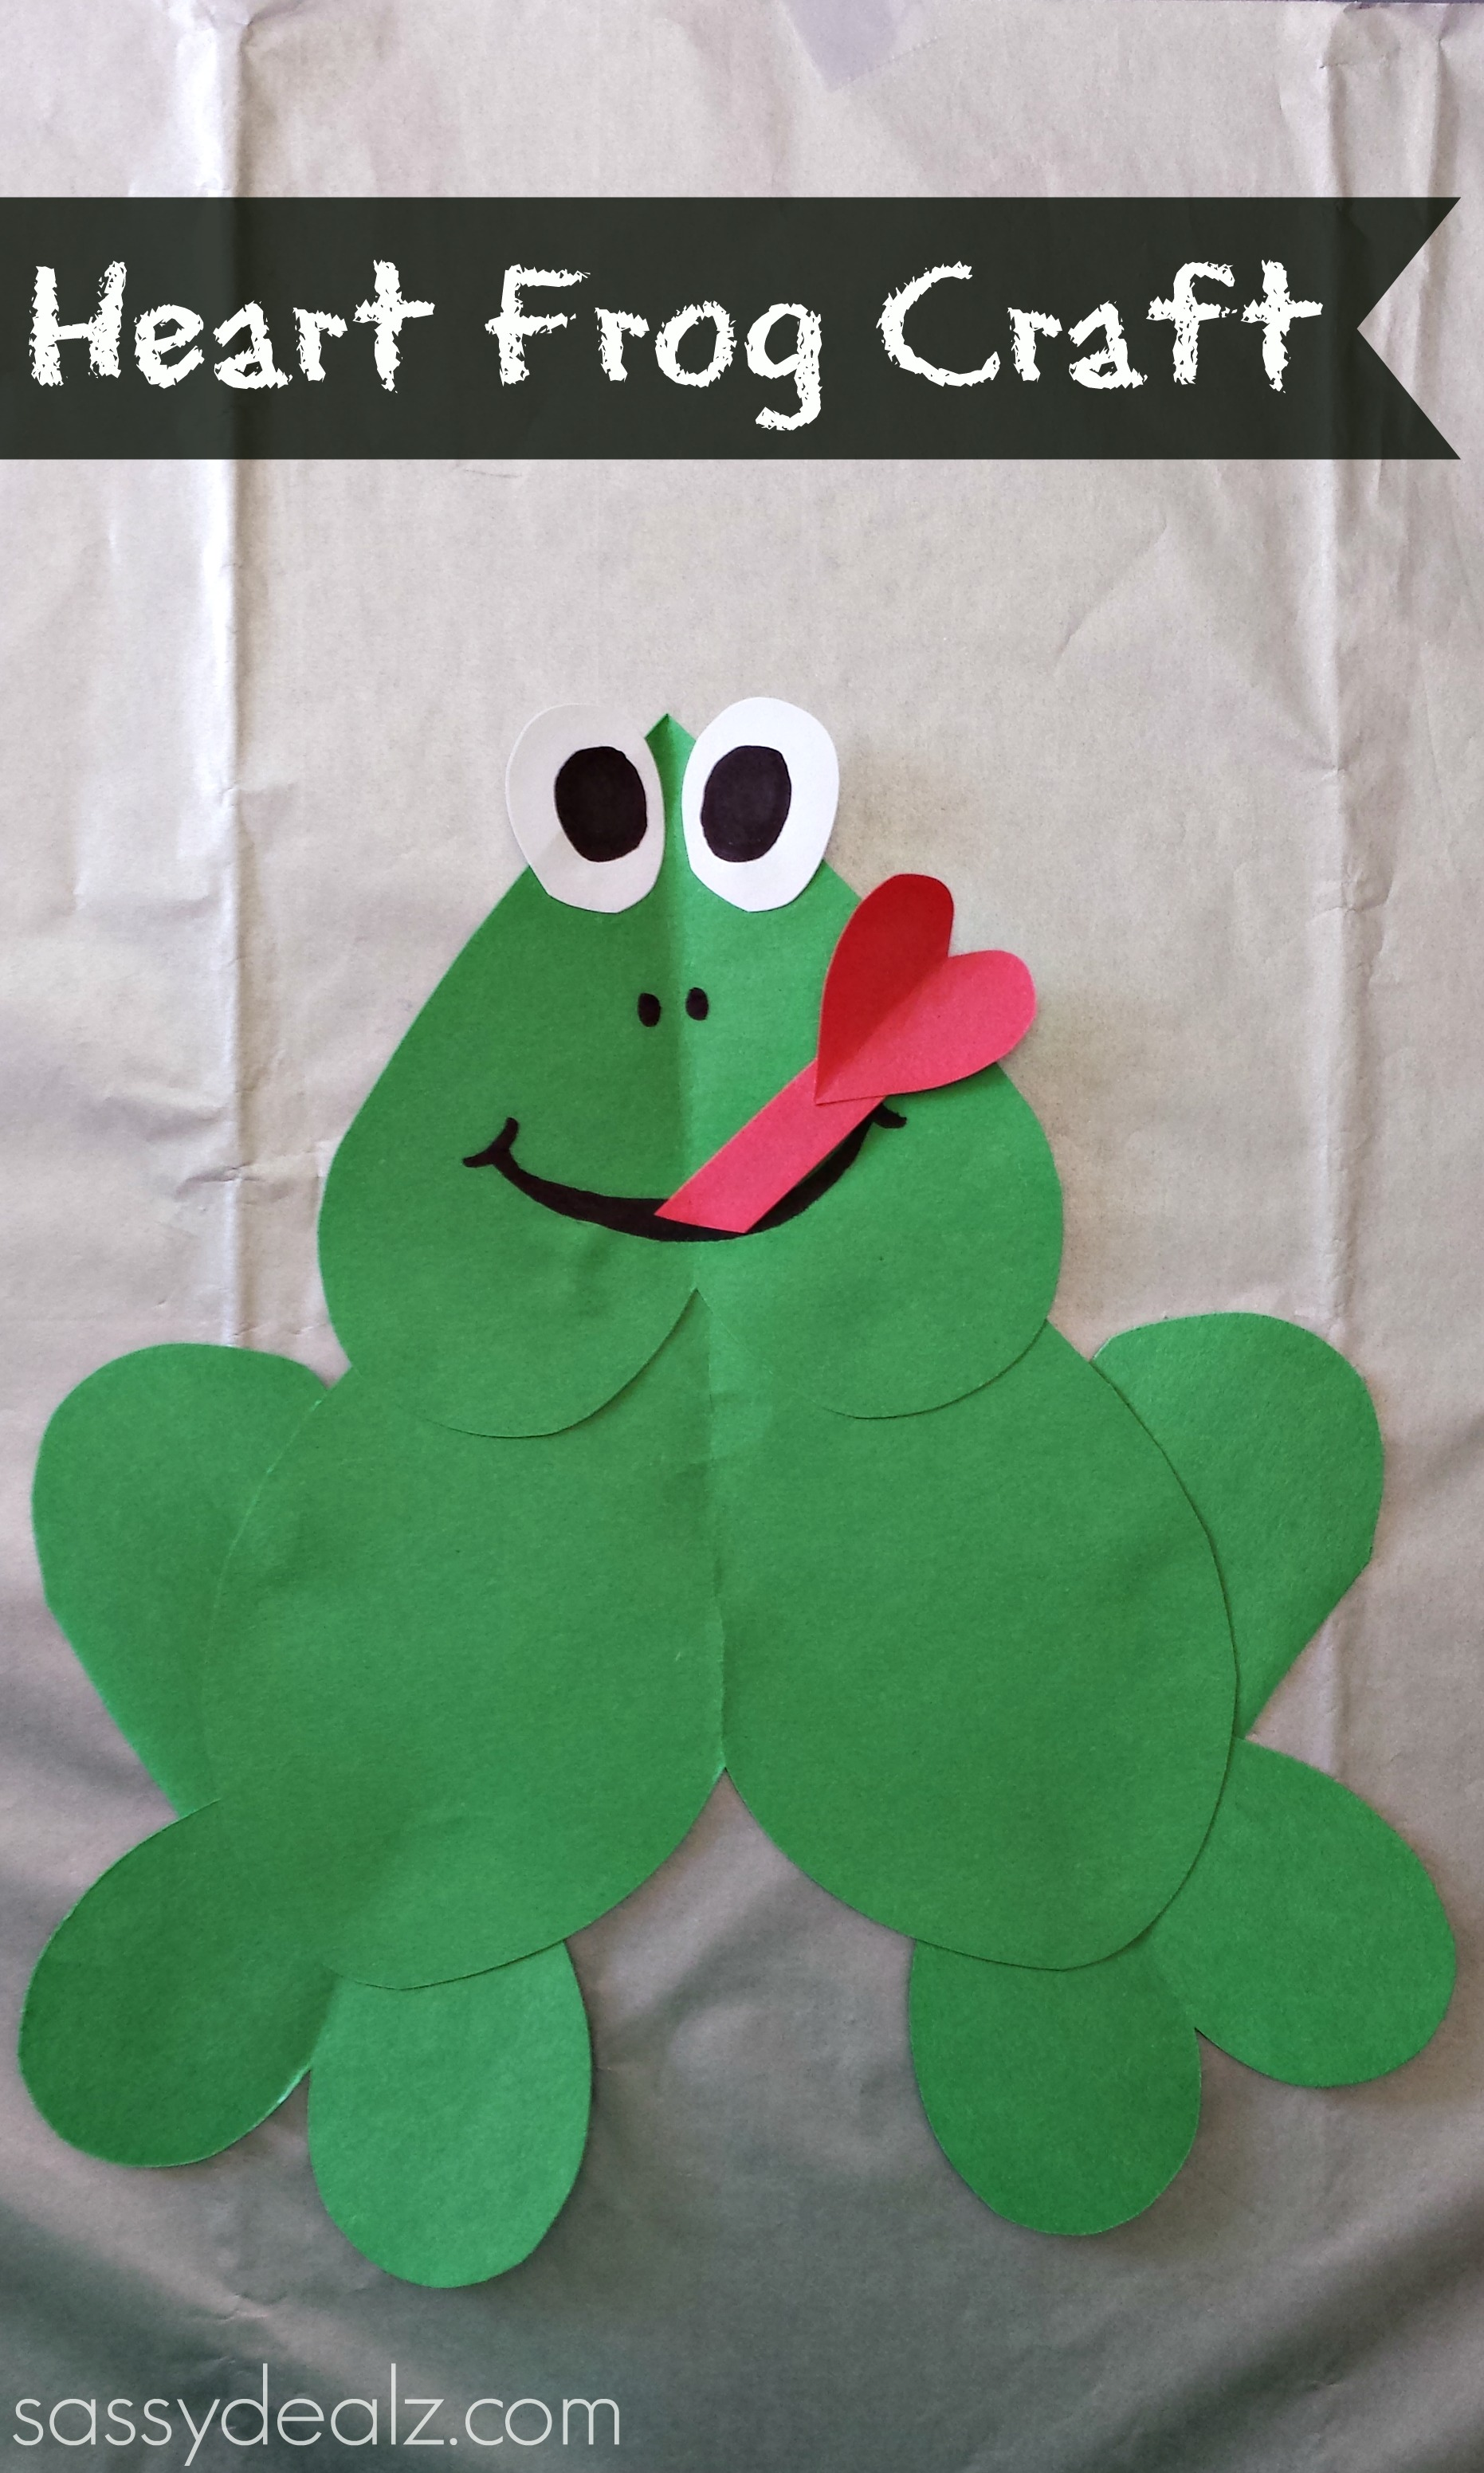 Paper Heart Frog Craft For Kids - Crafty Morning